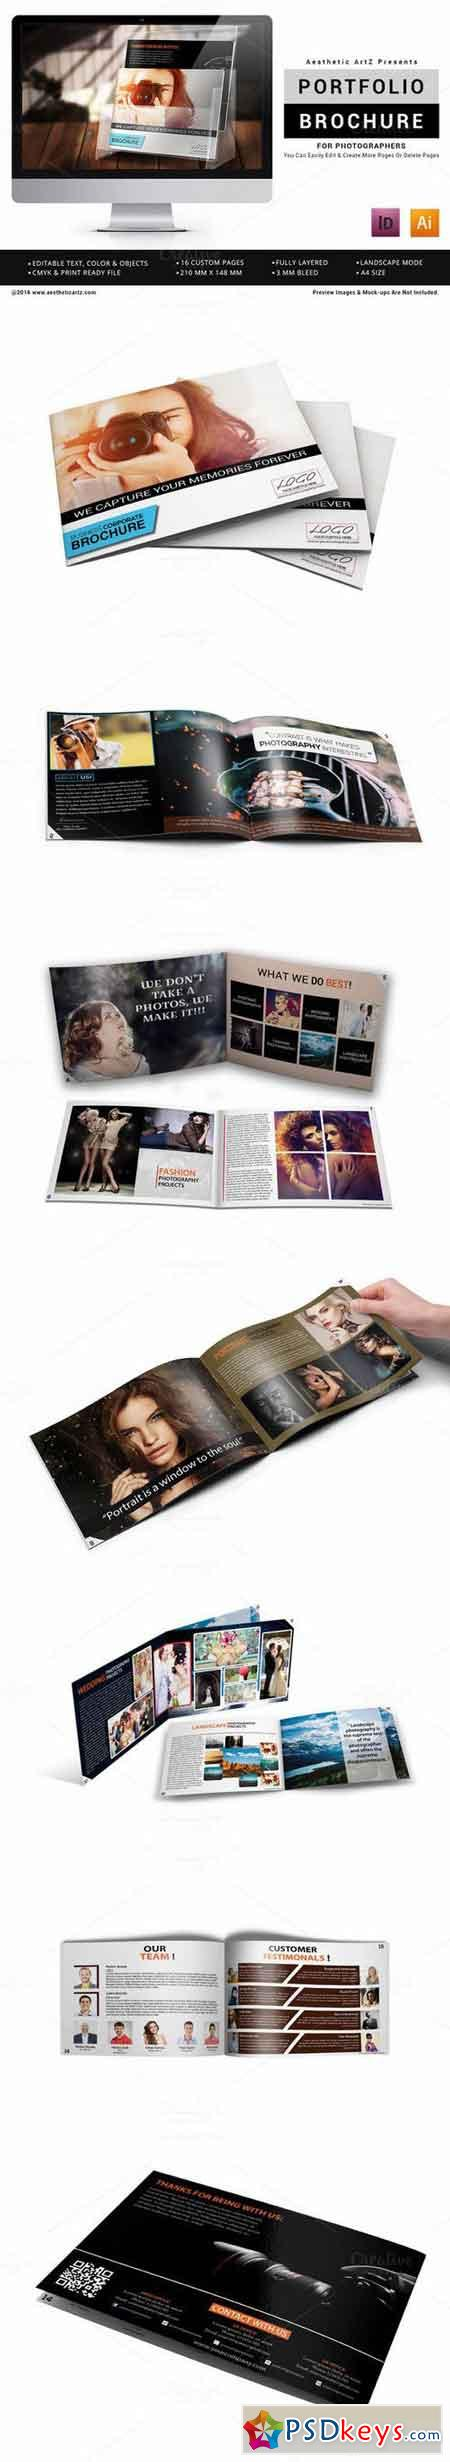 Photographer Portfolio Brochure 688129